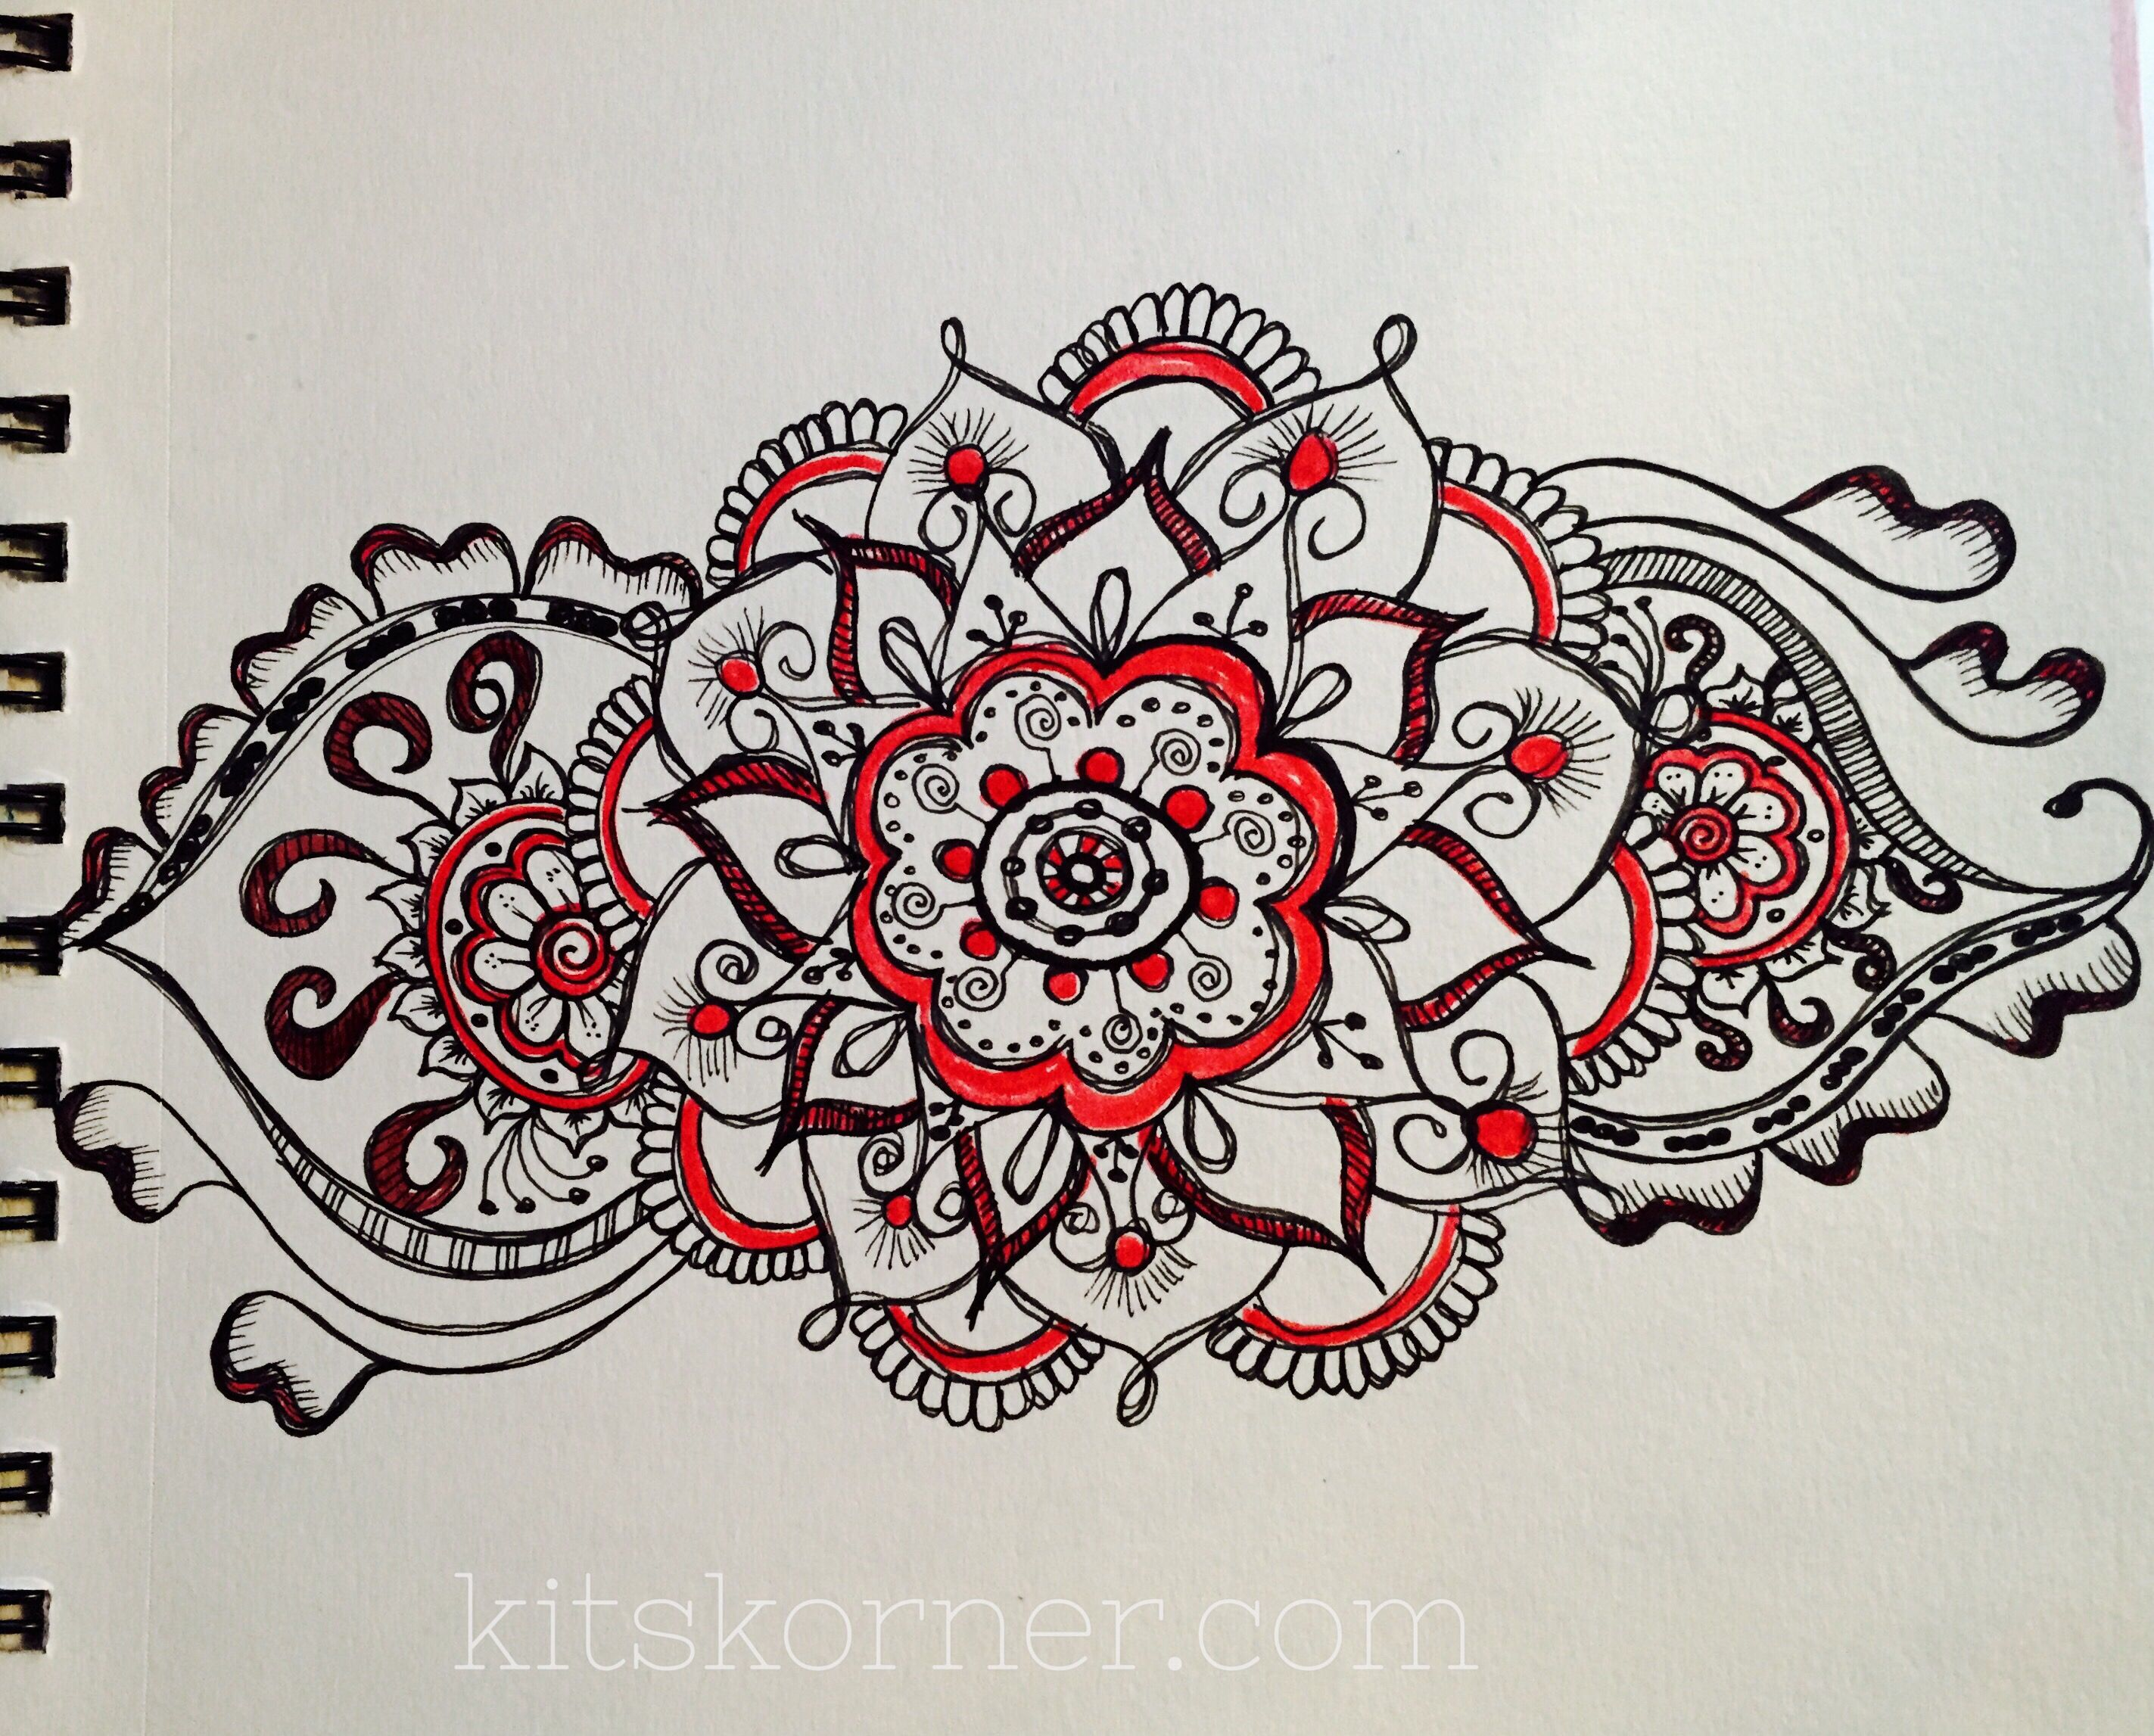 Sketchbook Mandalas 9 Pages Sketch Book Abstract Coloring Pages Mandala Doodle